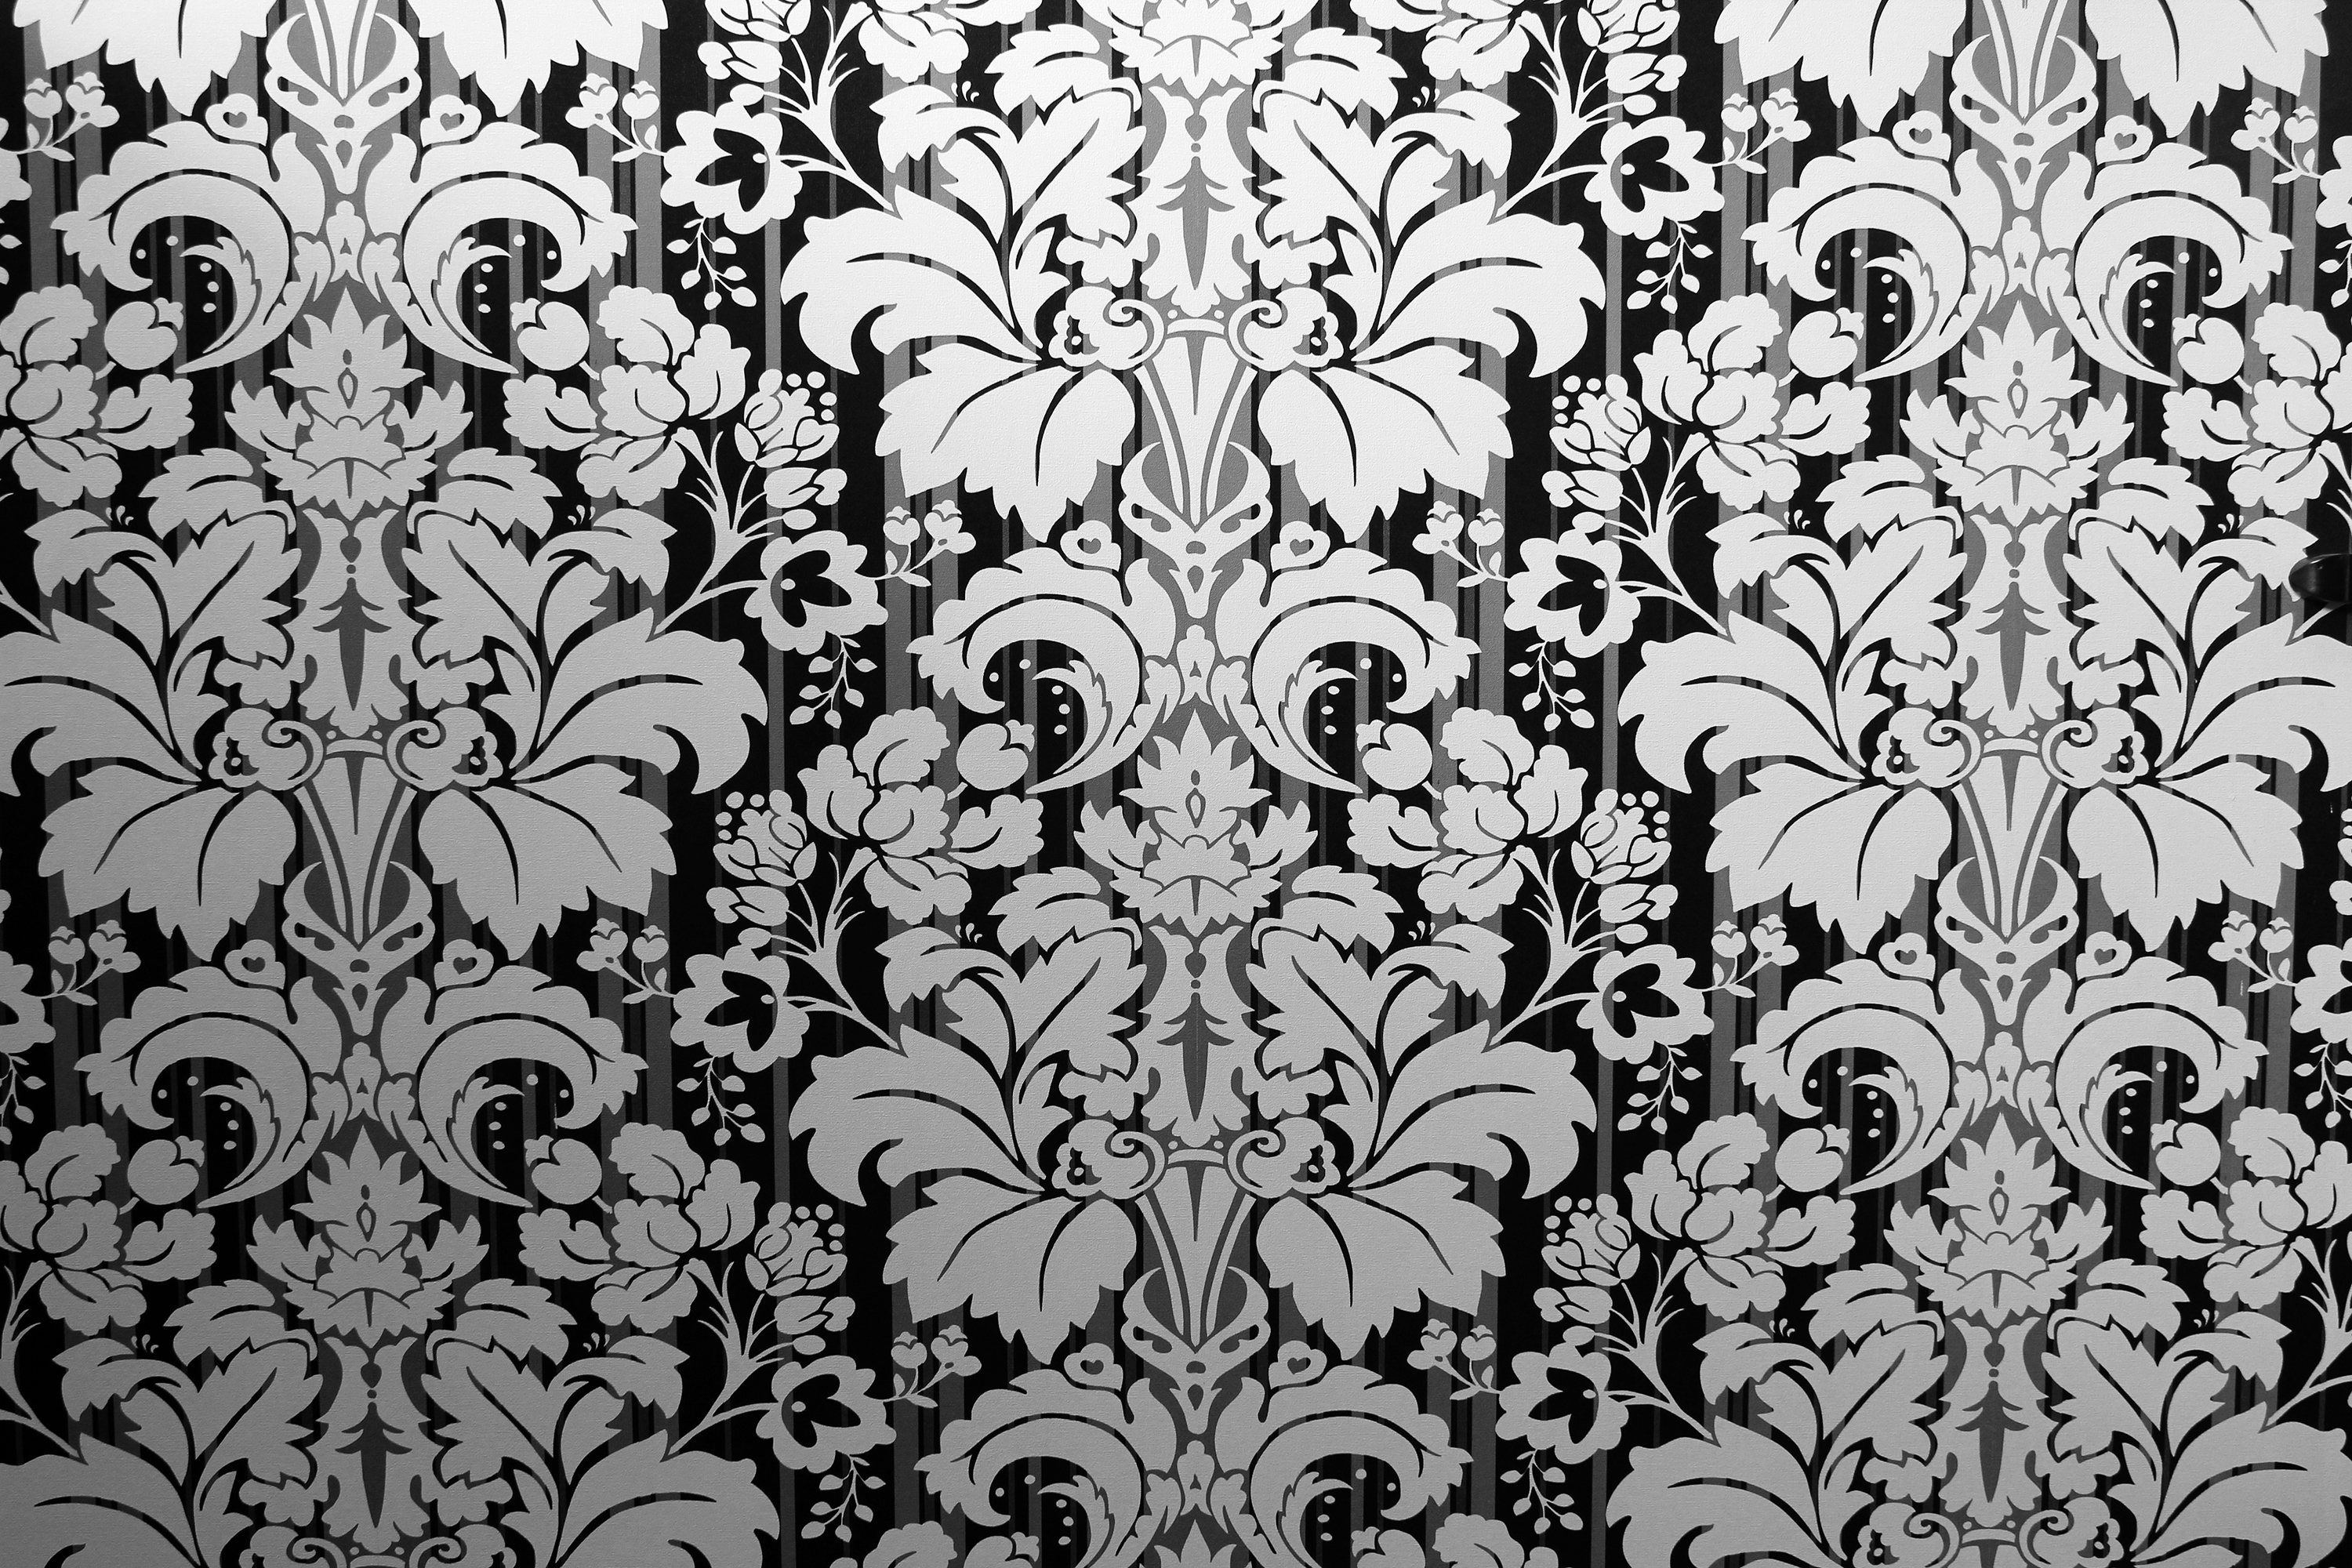 large design wallpaper 2015   Grasscloth Wallpaper 3000x2000